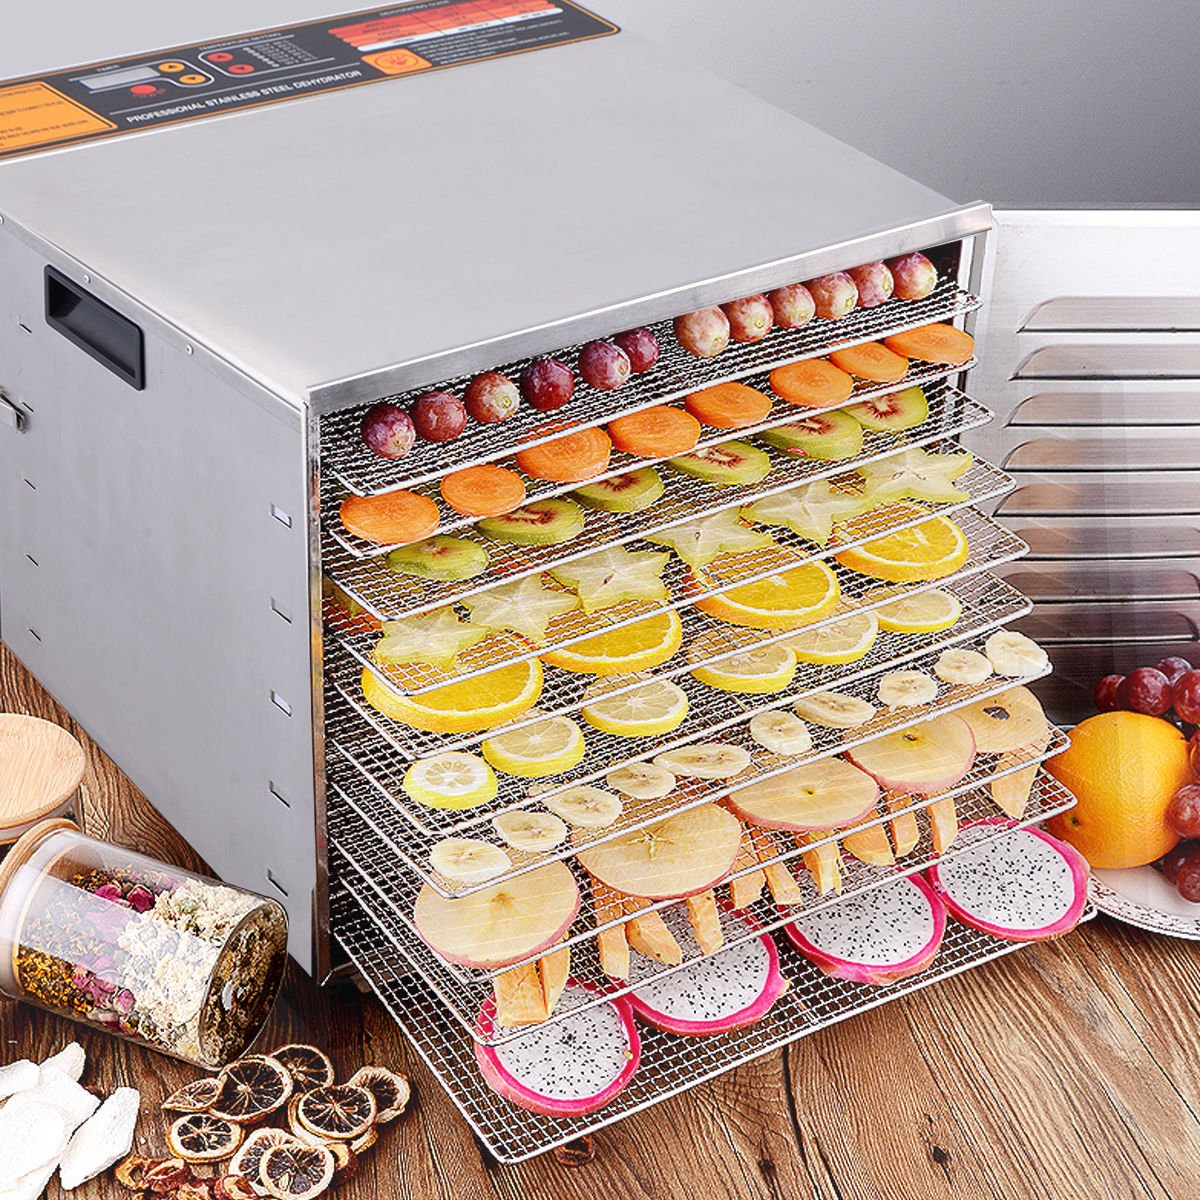 New 10 Tray Food Dehydrator Stainless Steel Fruit Jerky Dryer Blower Commercial